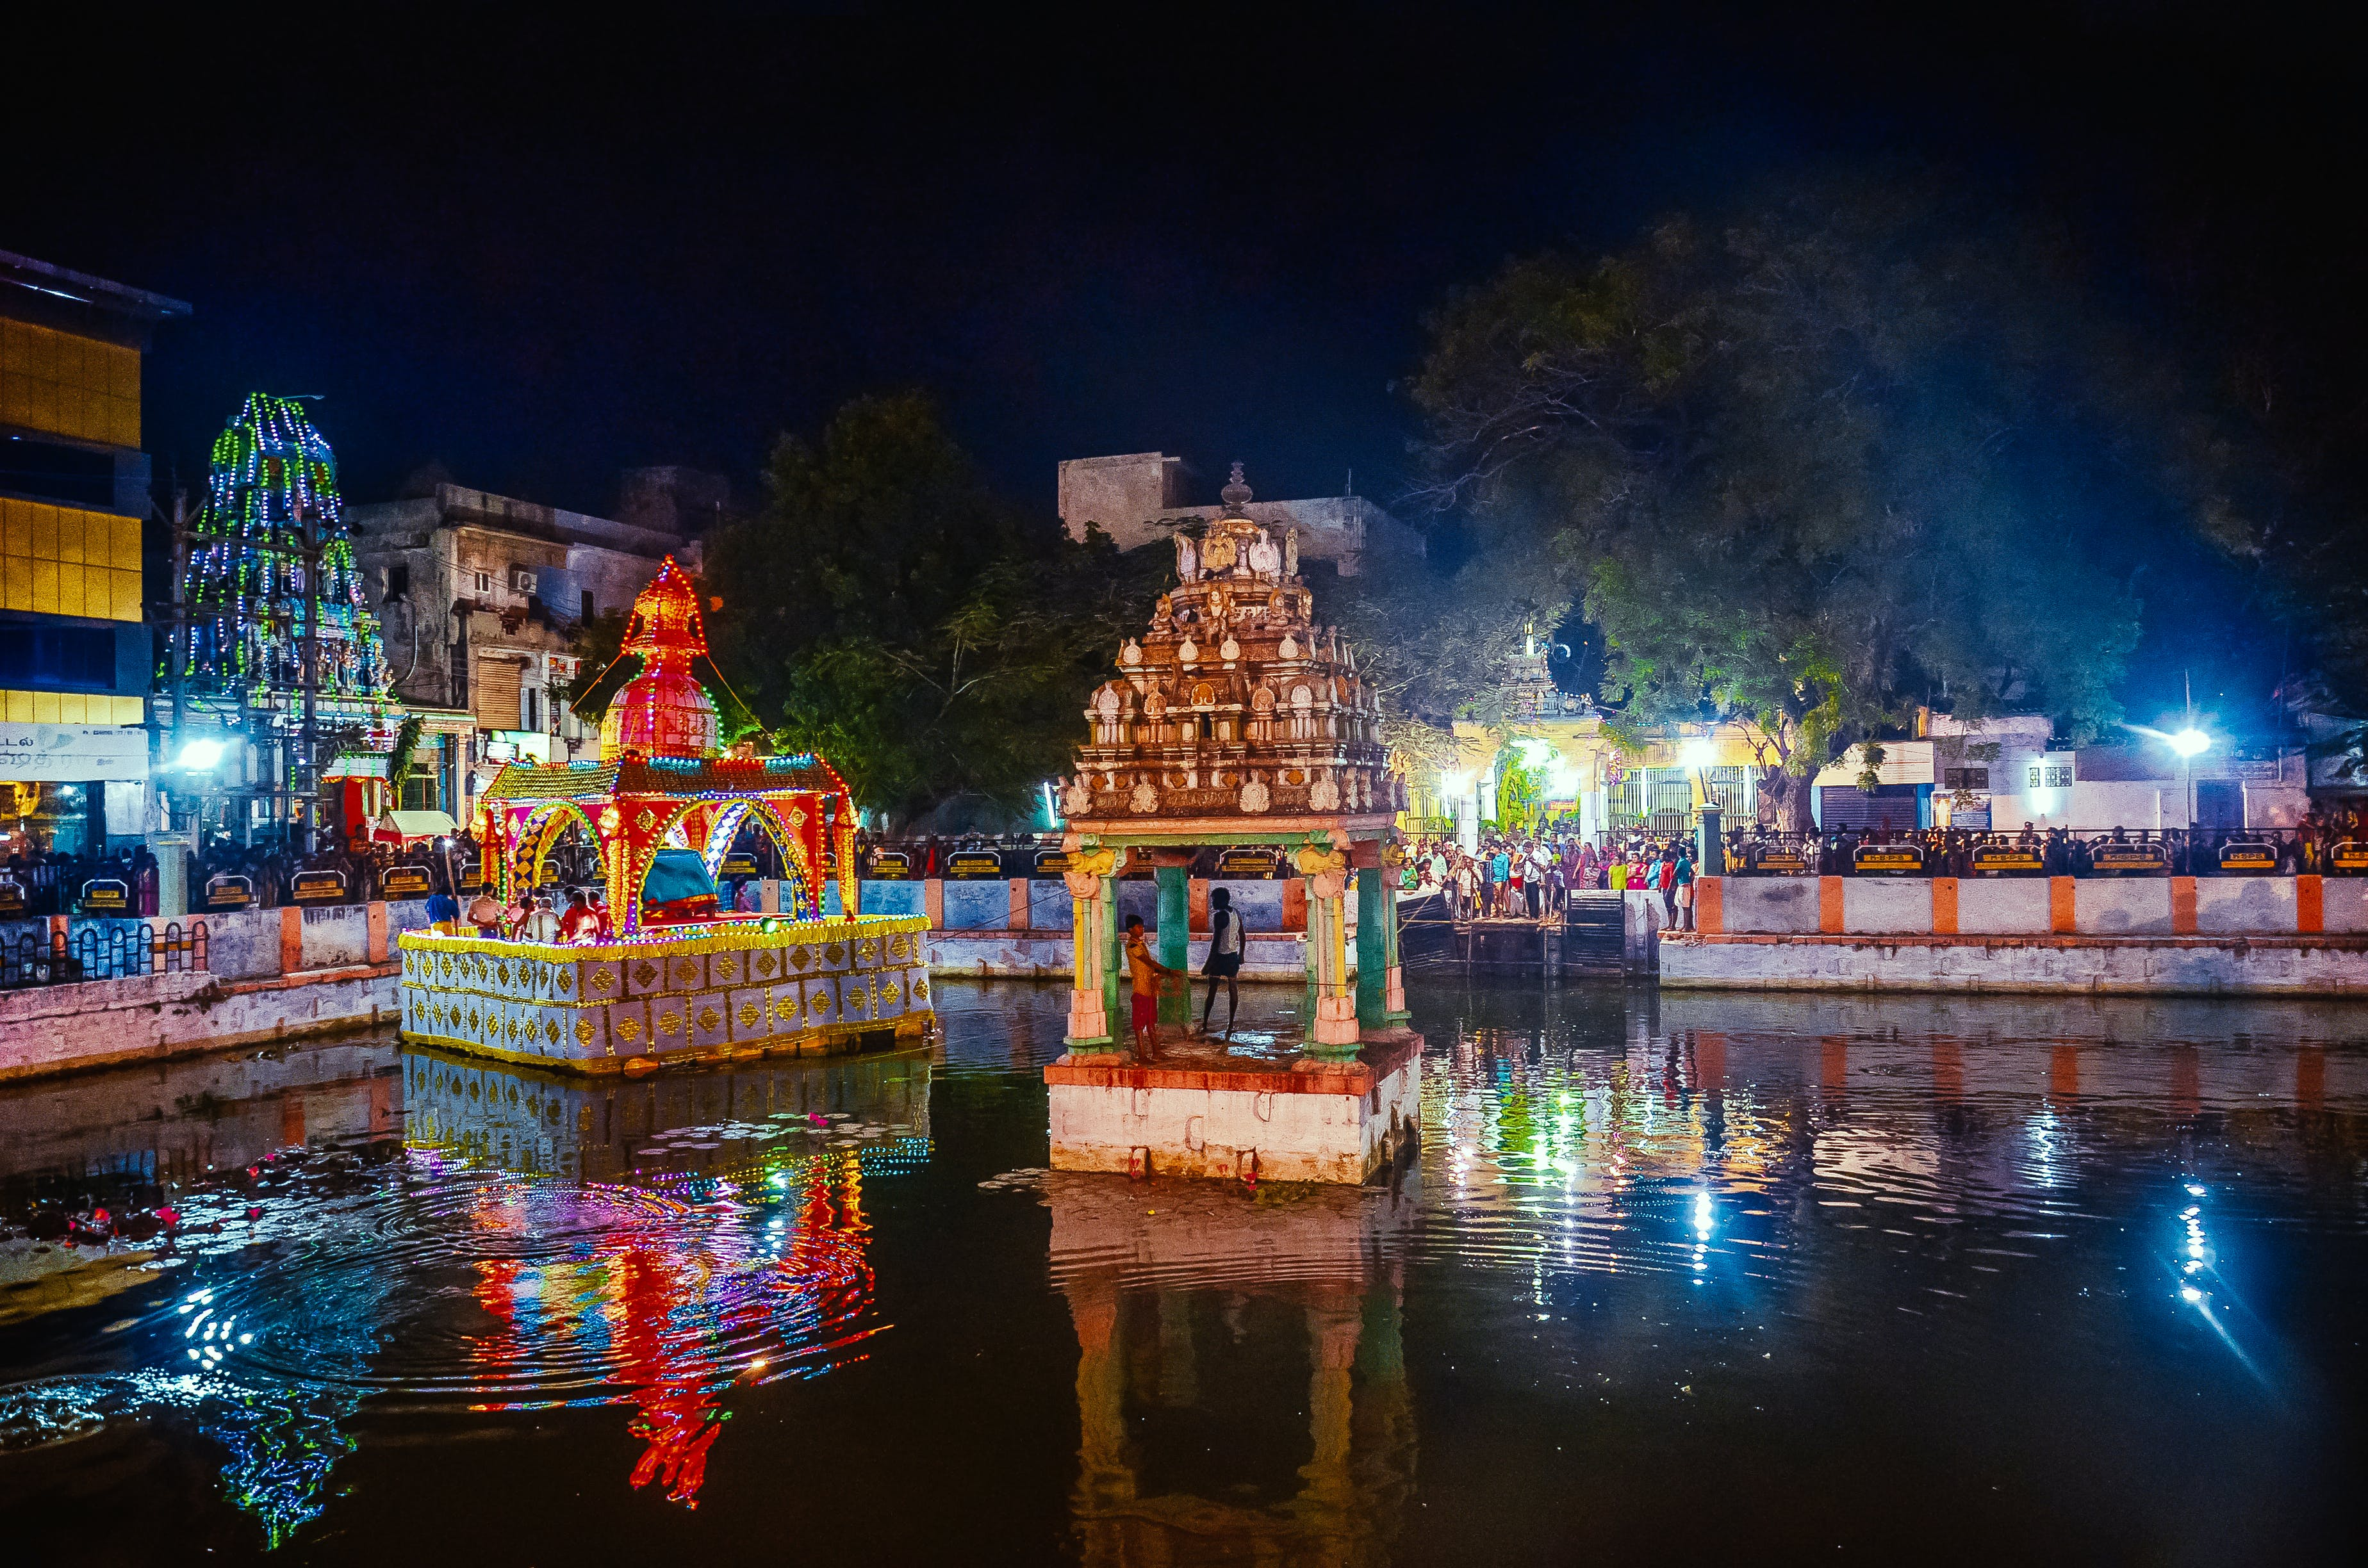 Free stock photo of colorful, festival of india, indian tradition, night